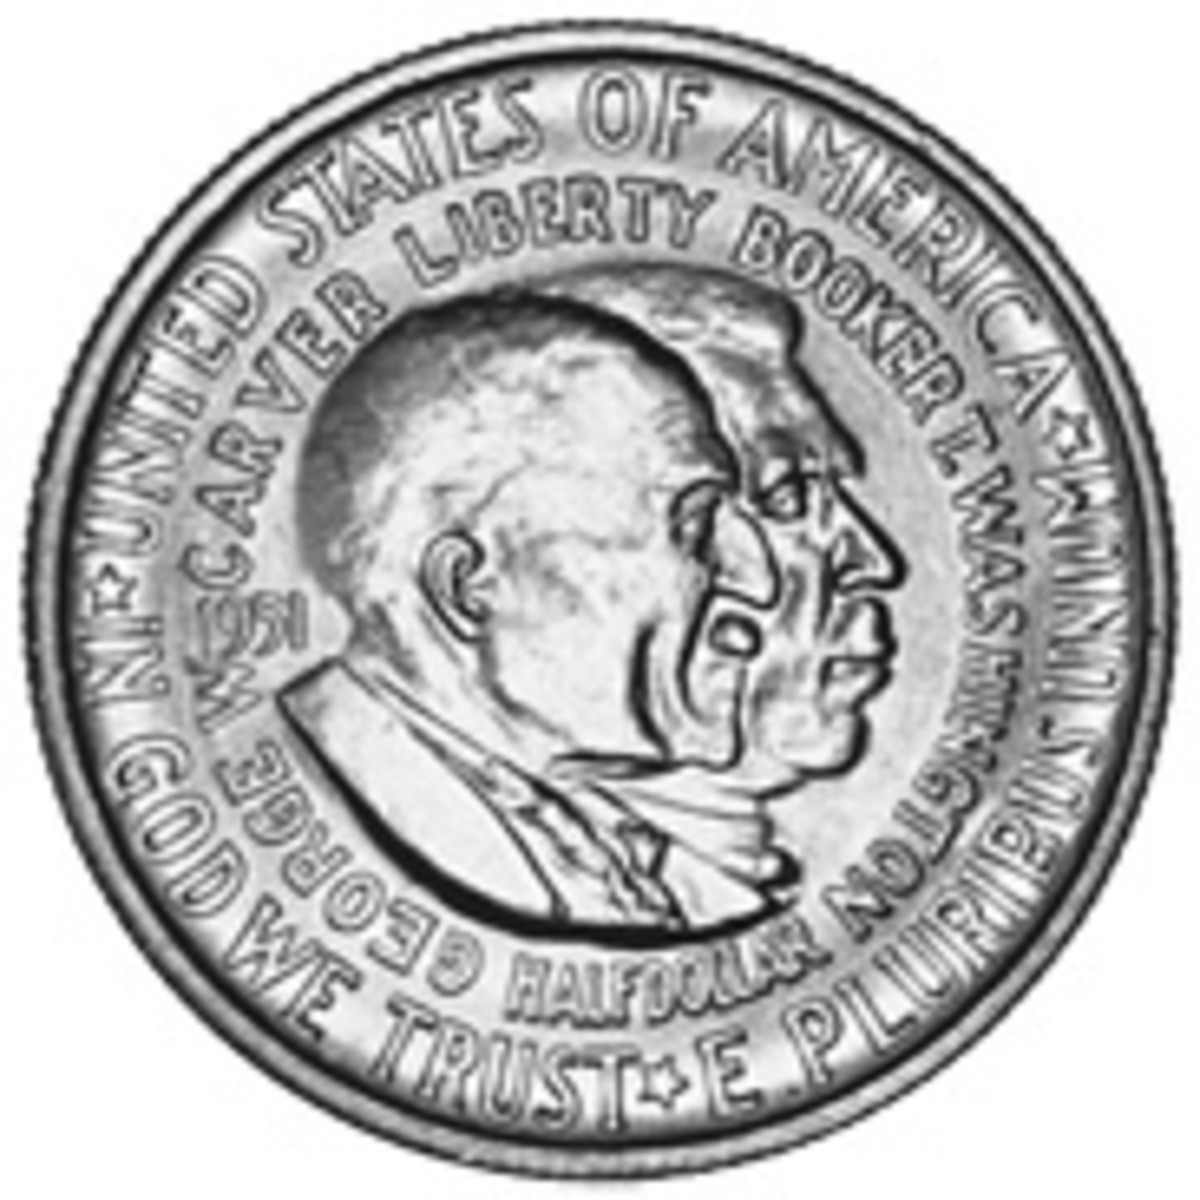 The Booker T. Washington and George Washington Carver half dollar was the the final commemorative half among classic U.S. commems.